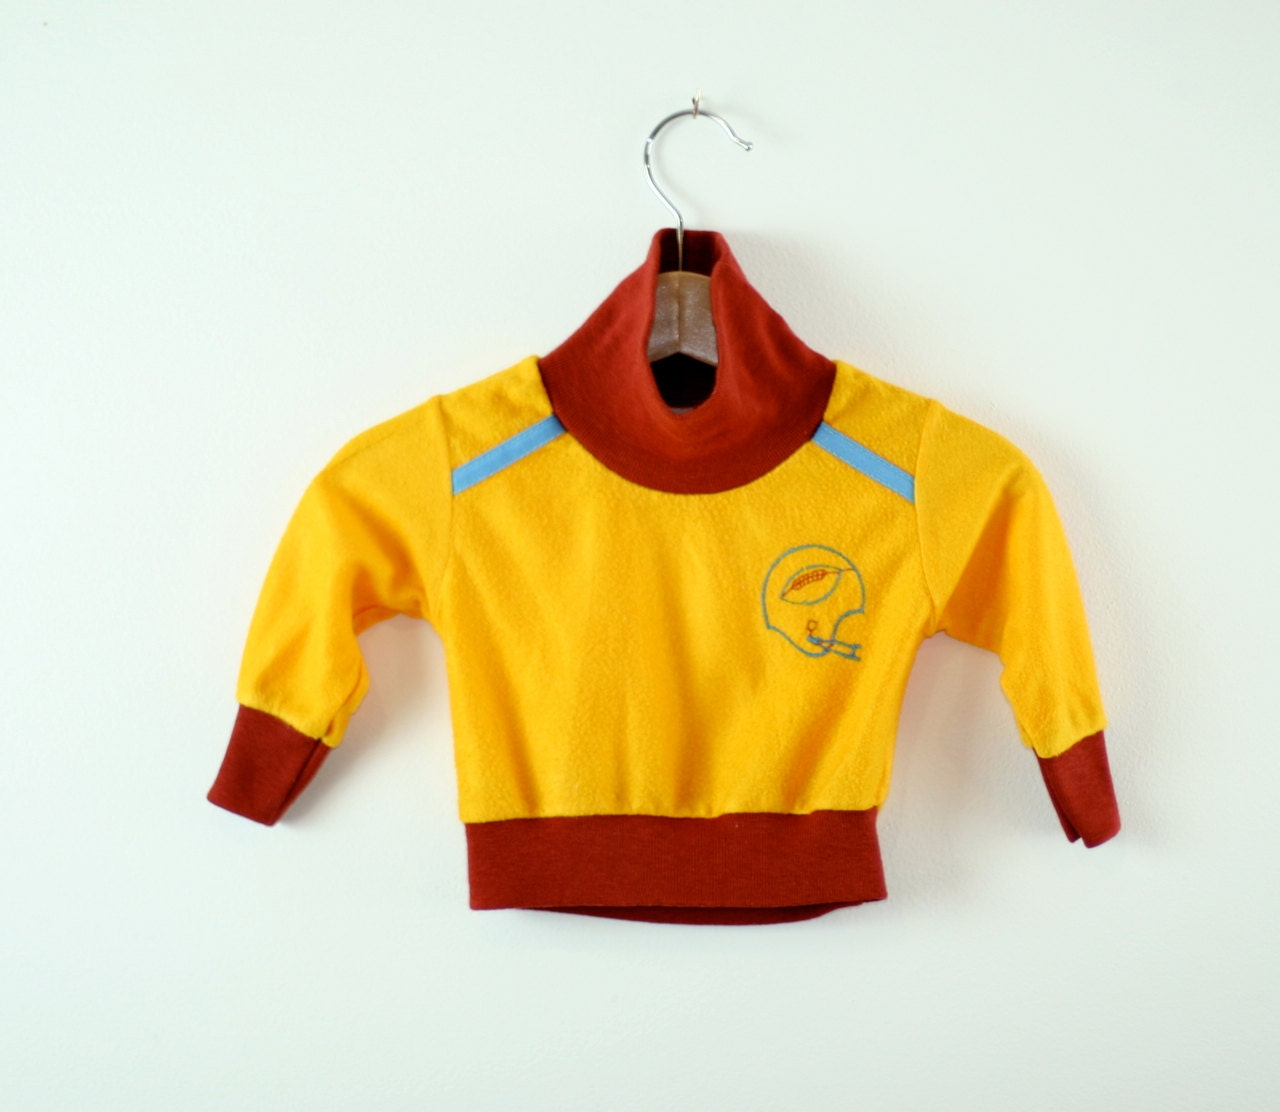 Vintage Baby Sweatshirt in Gold and Maroon Football Theme - udaskids